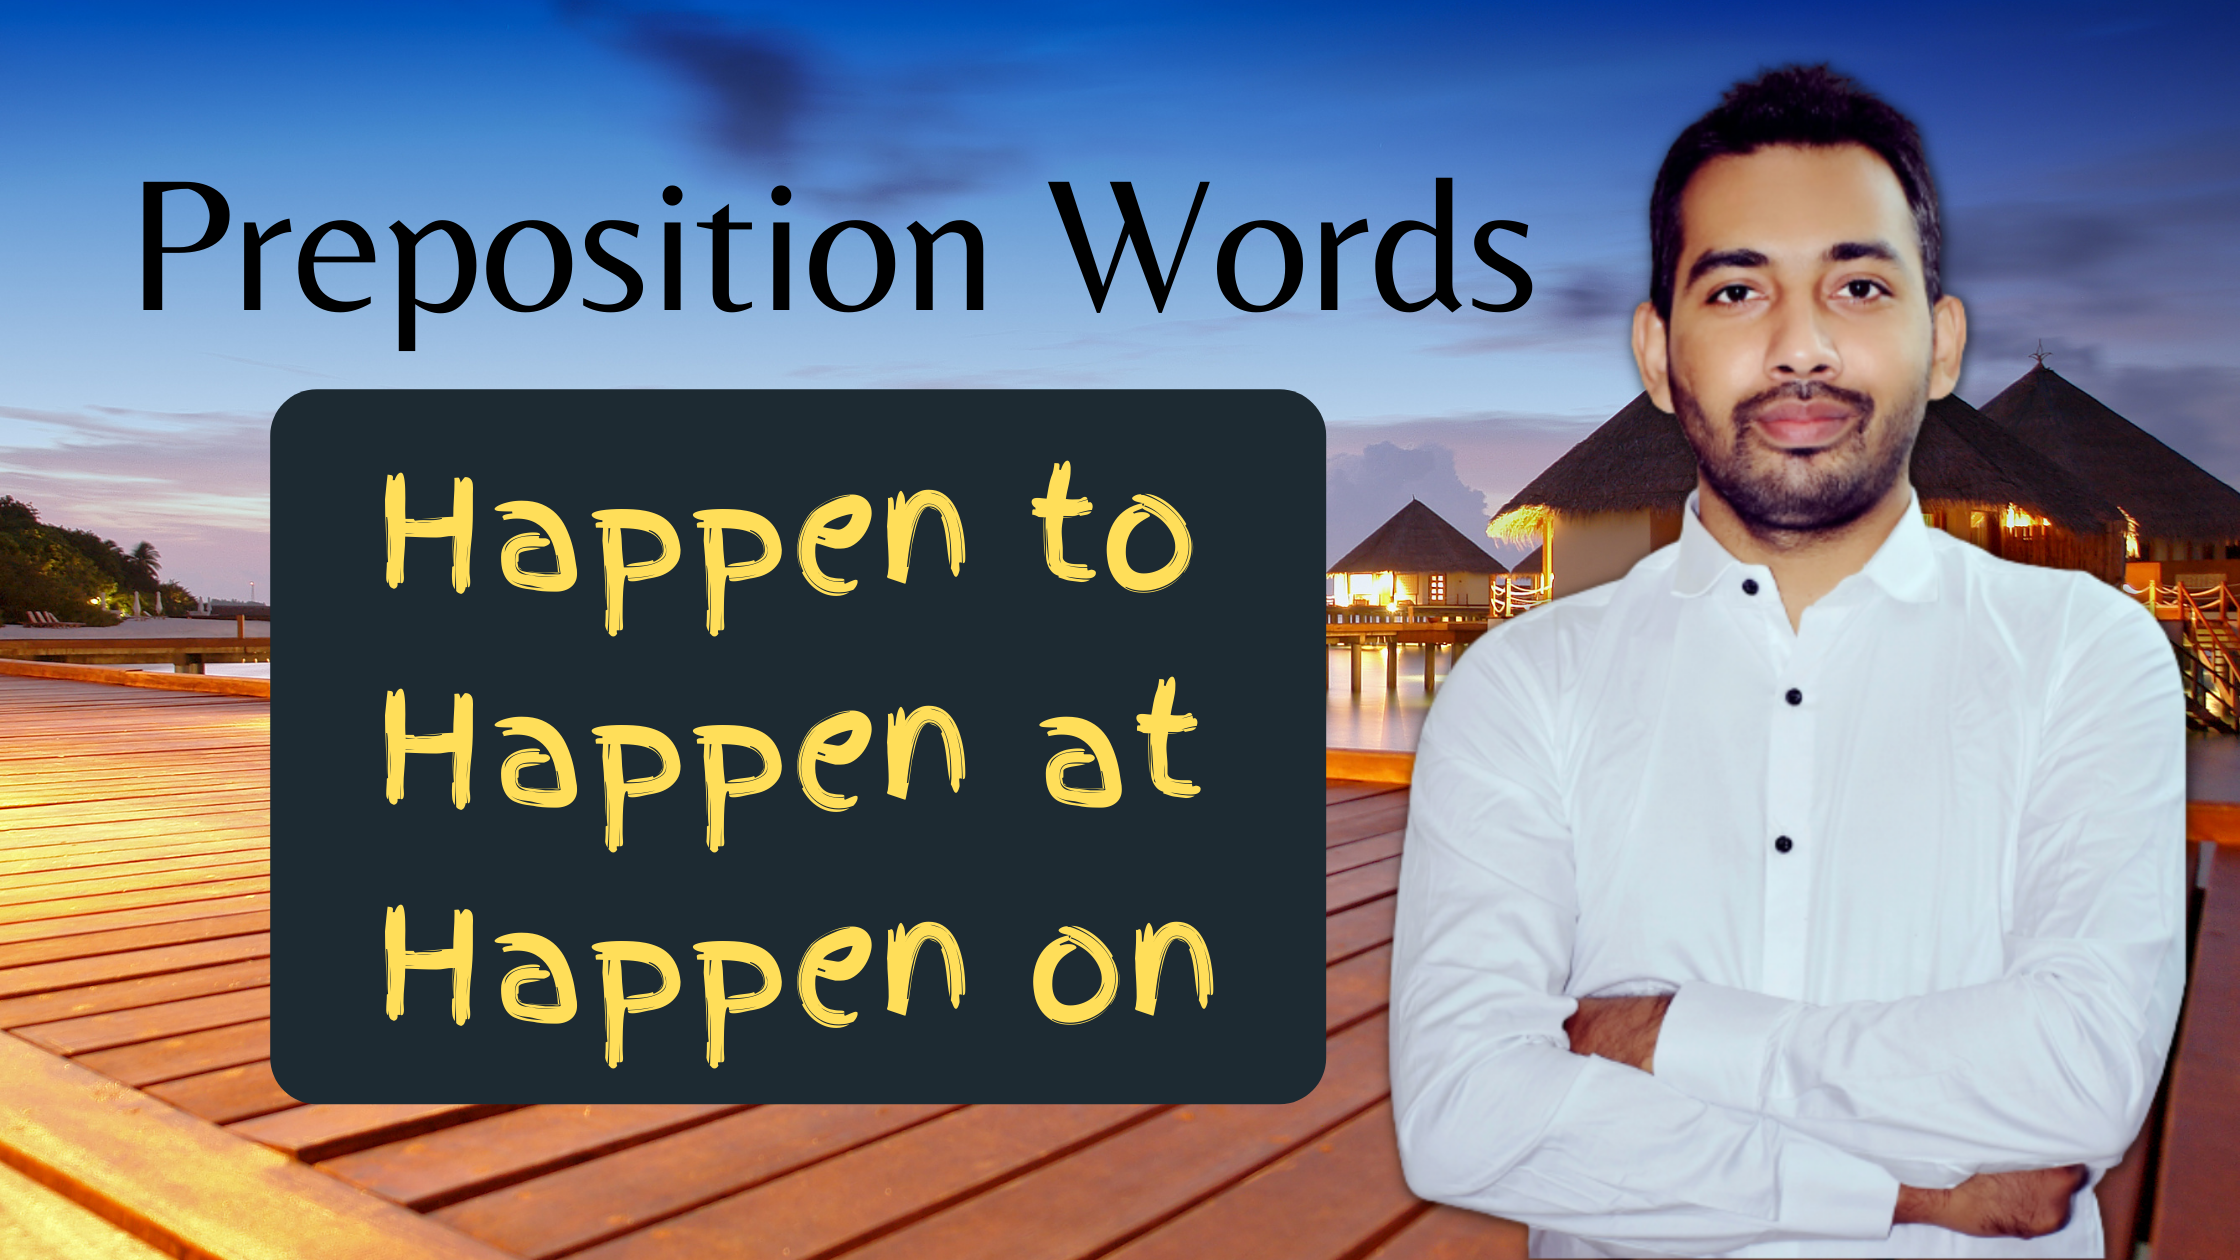 Preposition words with happen